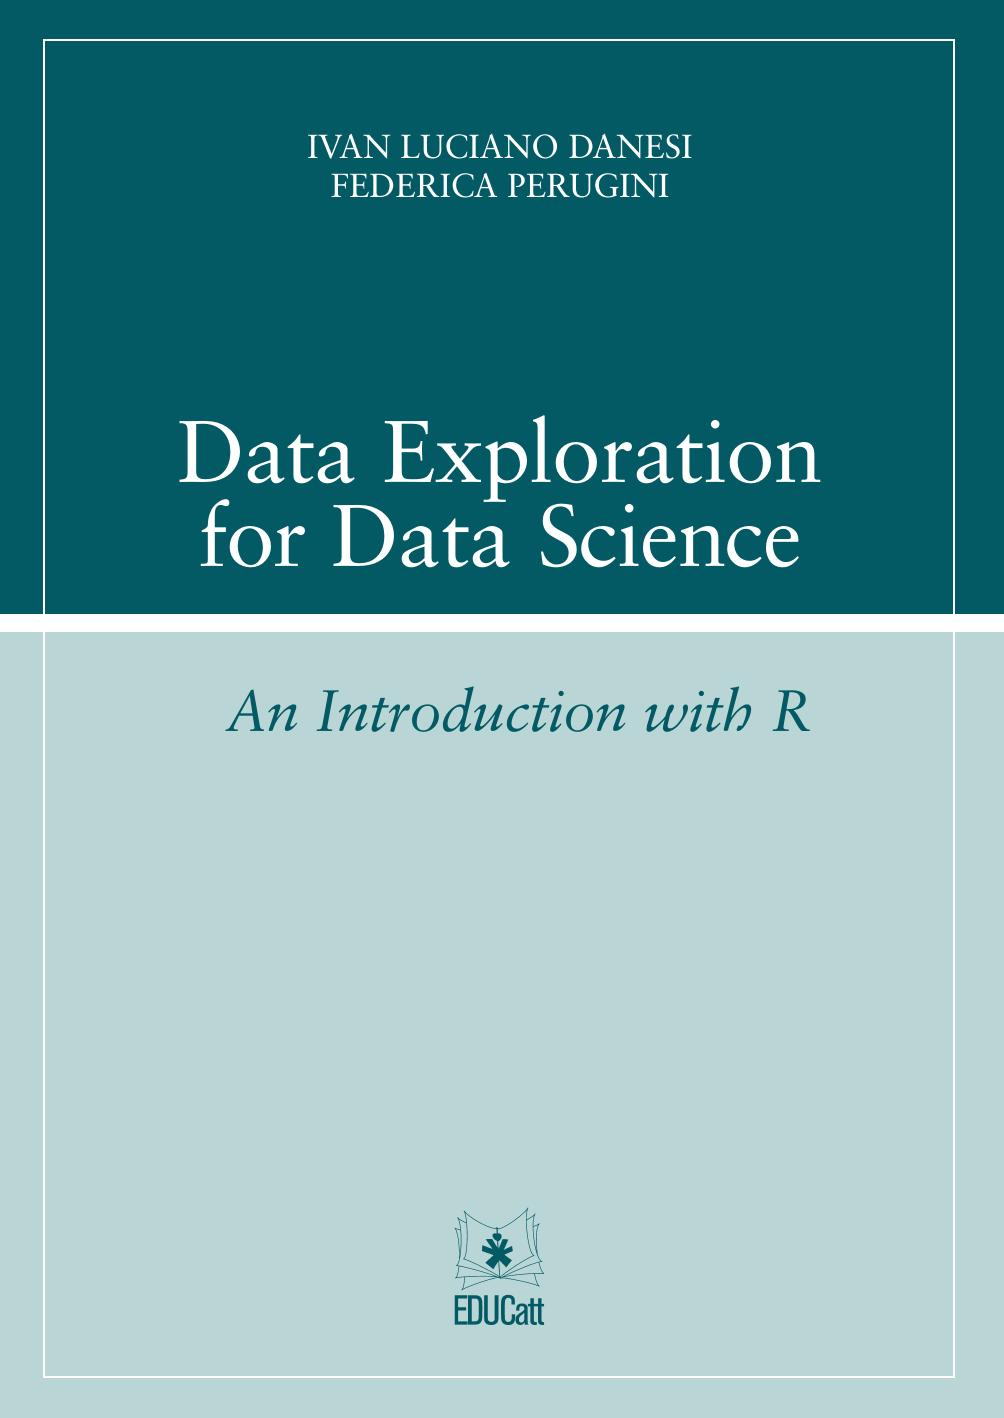 DATA EXPLORATION FOR DATA SCIENCE. AN INTRODUCTION WITH R